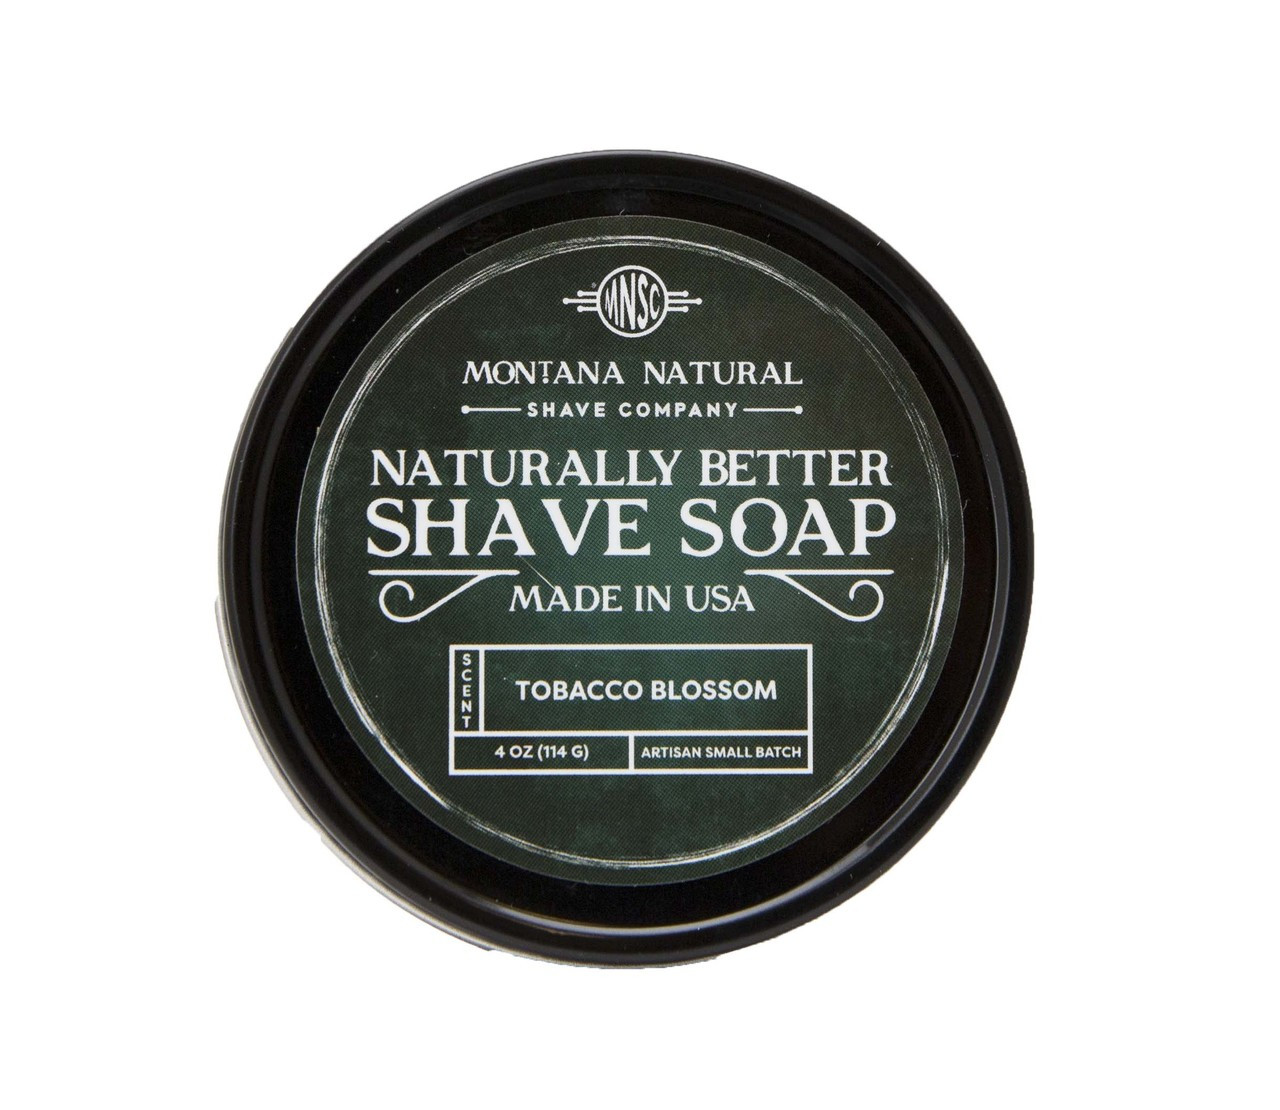 Tobacco Blossom Artisian Small Batch Shave Soap for a Naturally Better Shave Experience